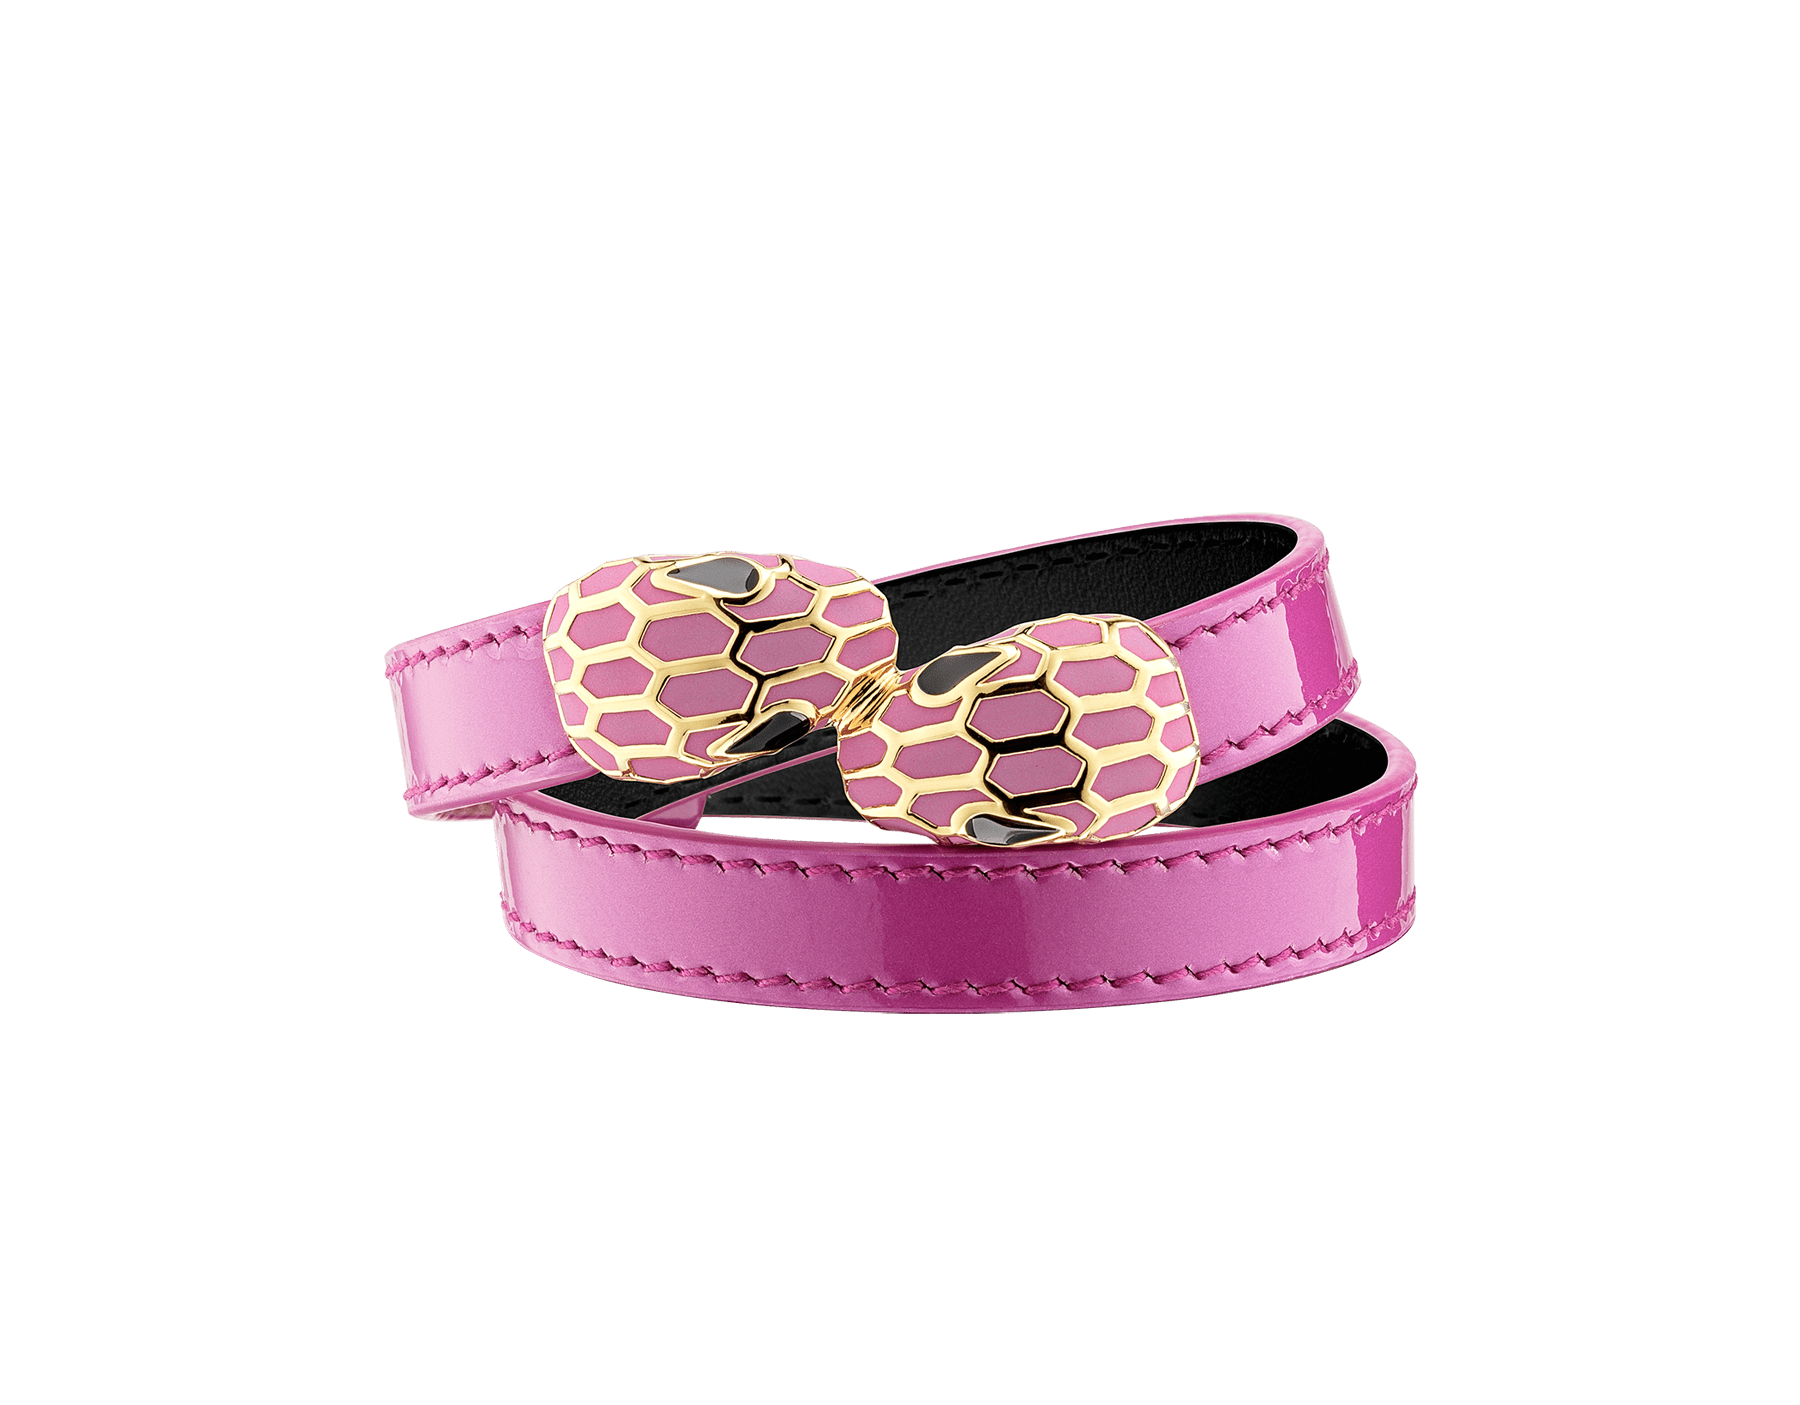 """Serpenti Forever"" multi-coiled bracelet in Magenta Spinel purple calf leather with a varnished and pearled effect. Gold plated brass tempting contraire snakehead décor enameled in full matte Magenta Spinel fuchsia, finished with black enamel eyes. Chinese New Year Special Edition MCSerp-VCL-MS image 3"